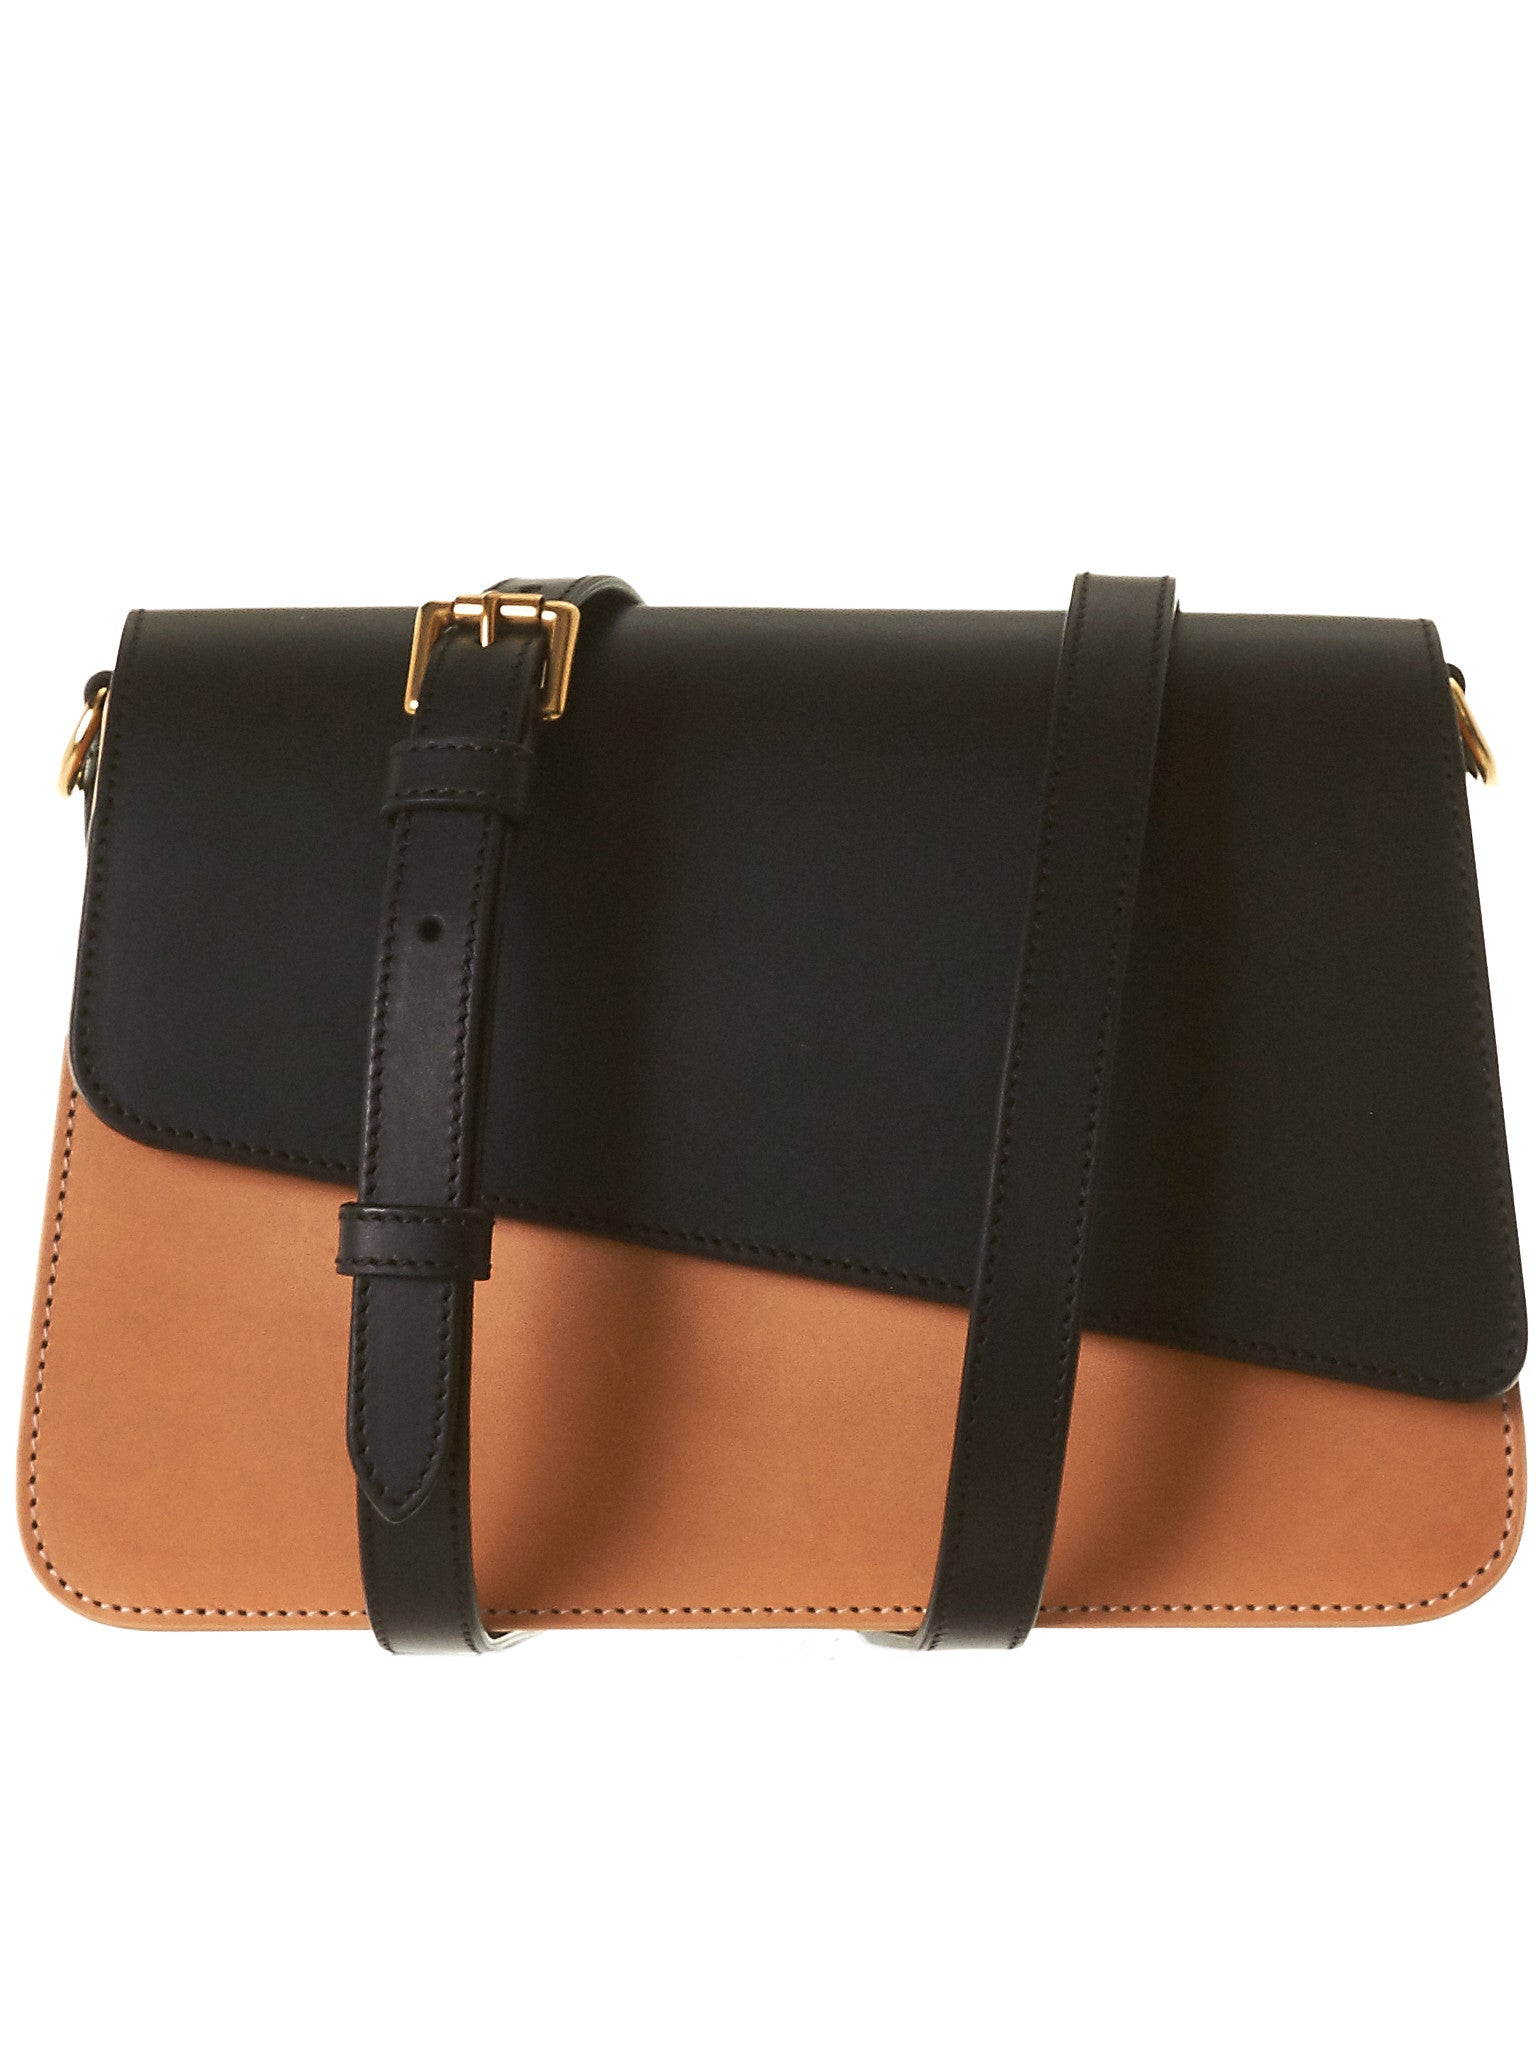 Celeste Bag (CELESTE-BLACK-NATURAL) - H. Lorenzo